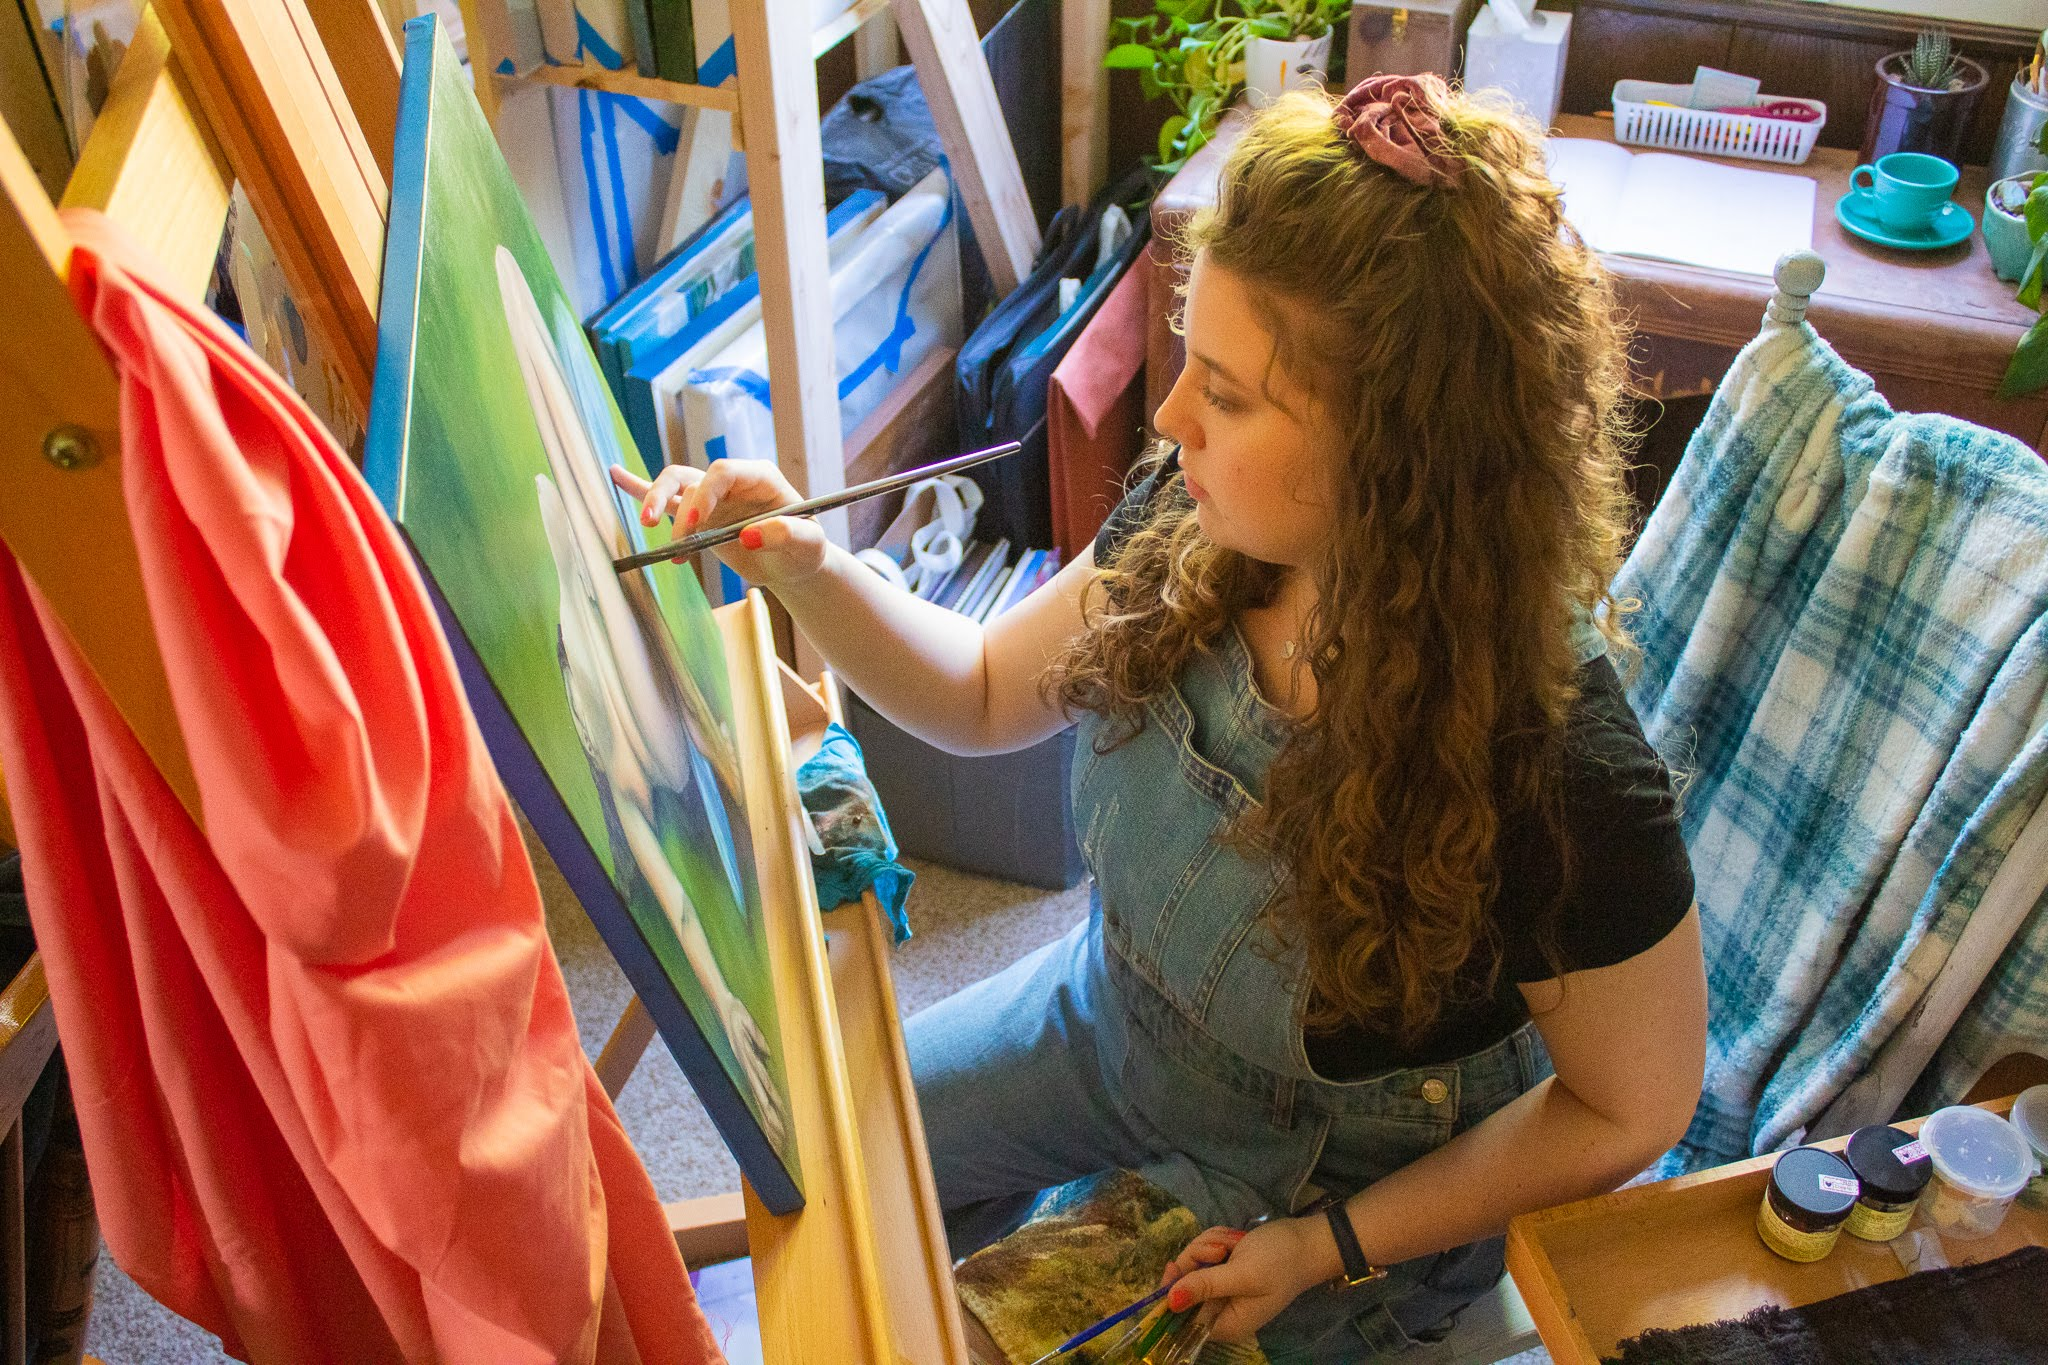 Holly Tharnish, an artist, is sitting in a chair and painting.